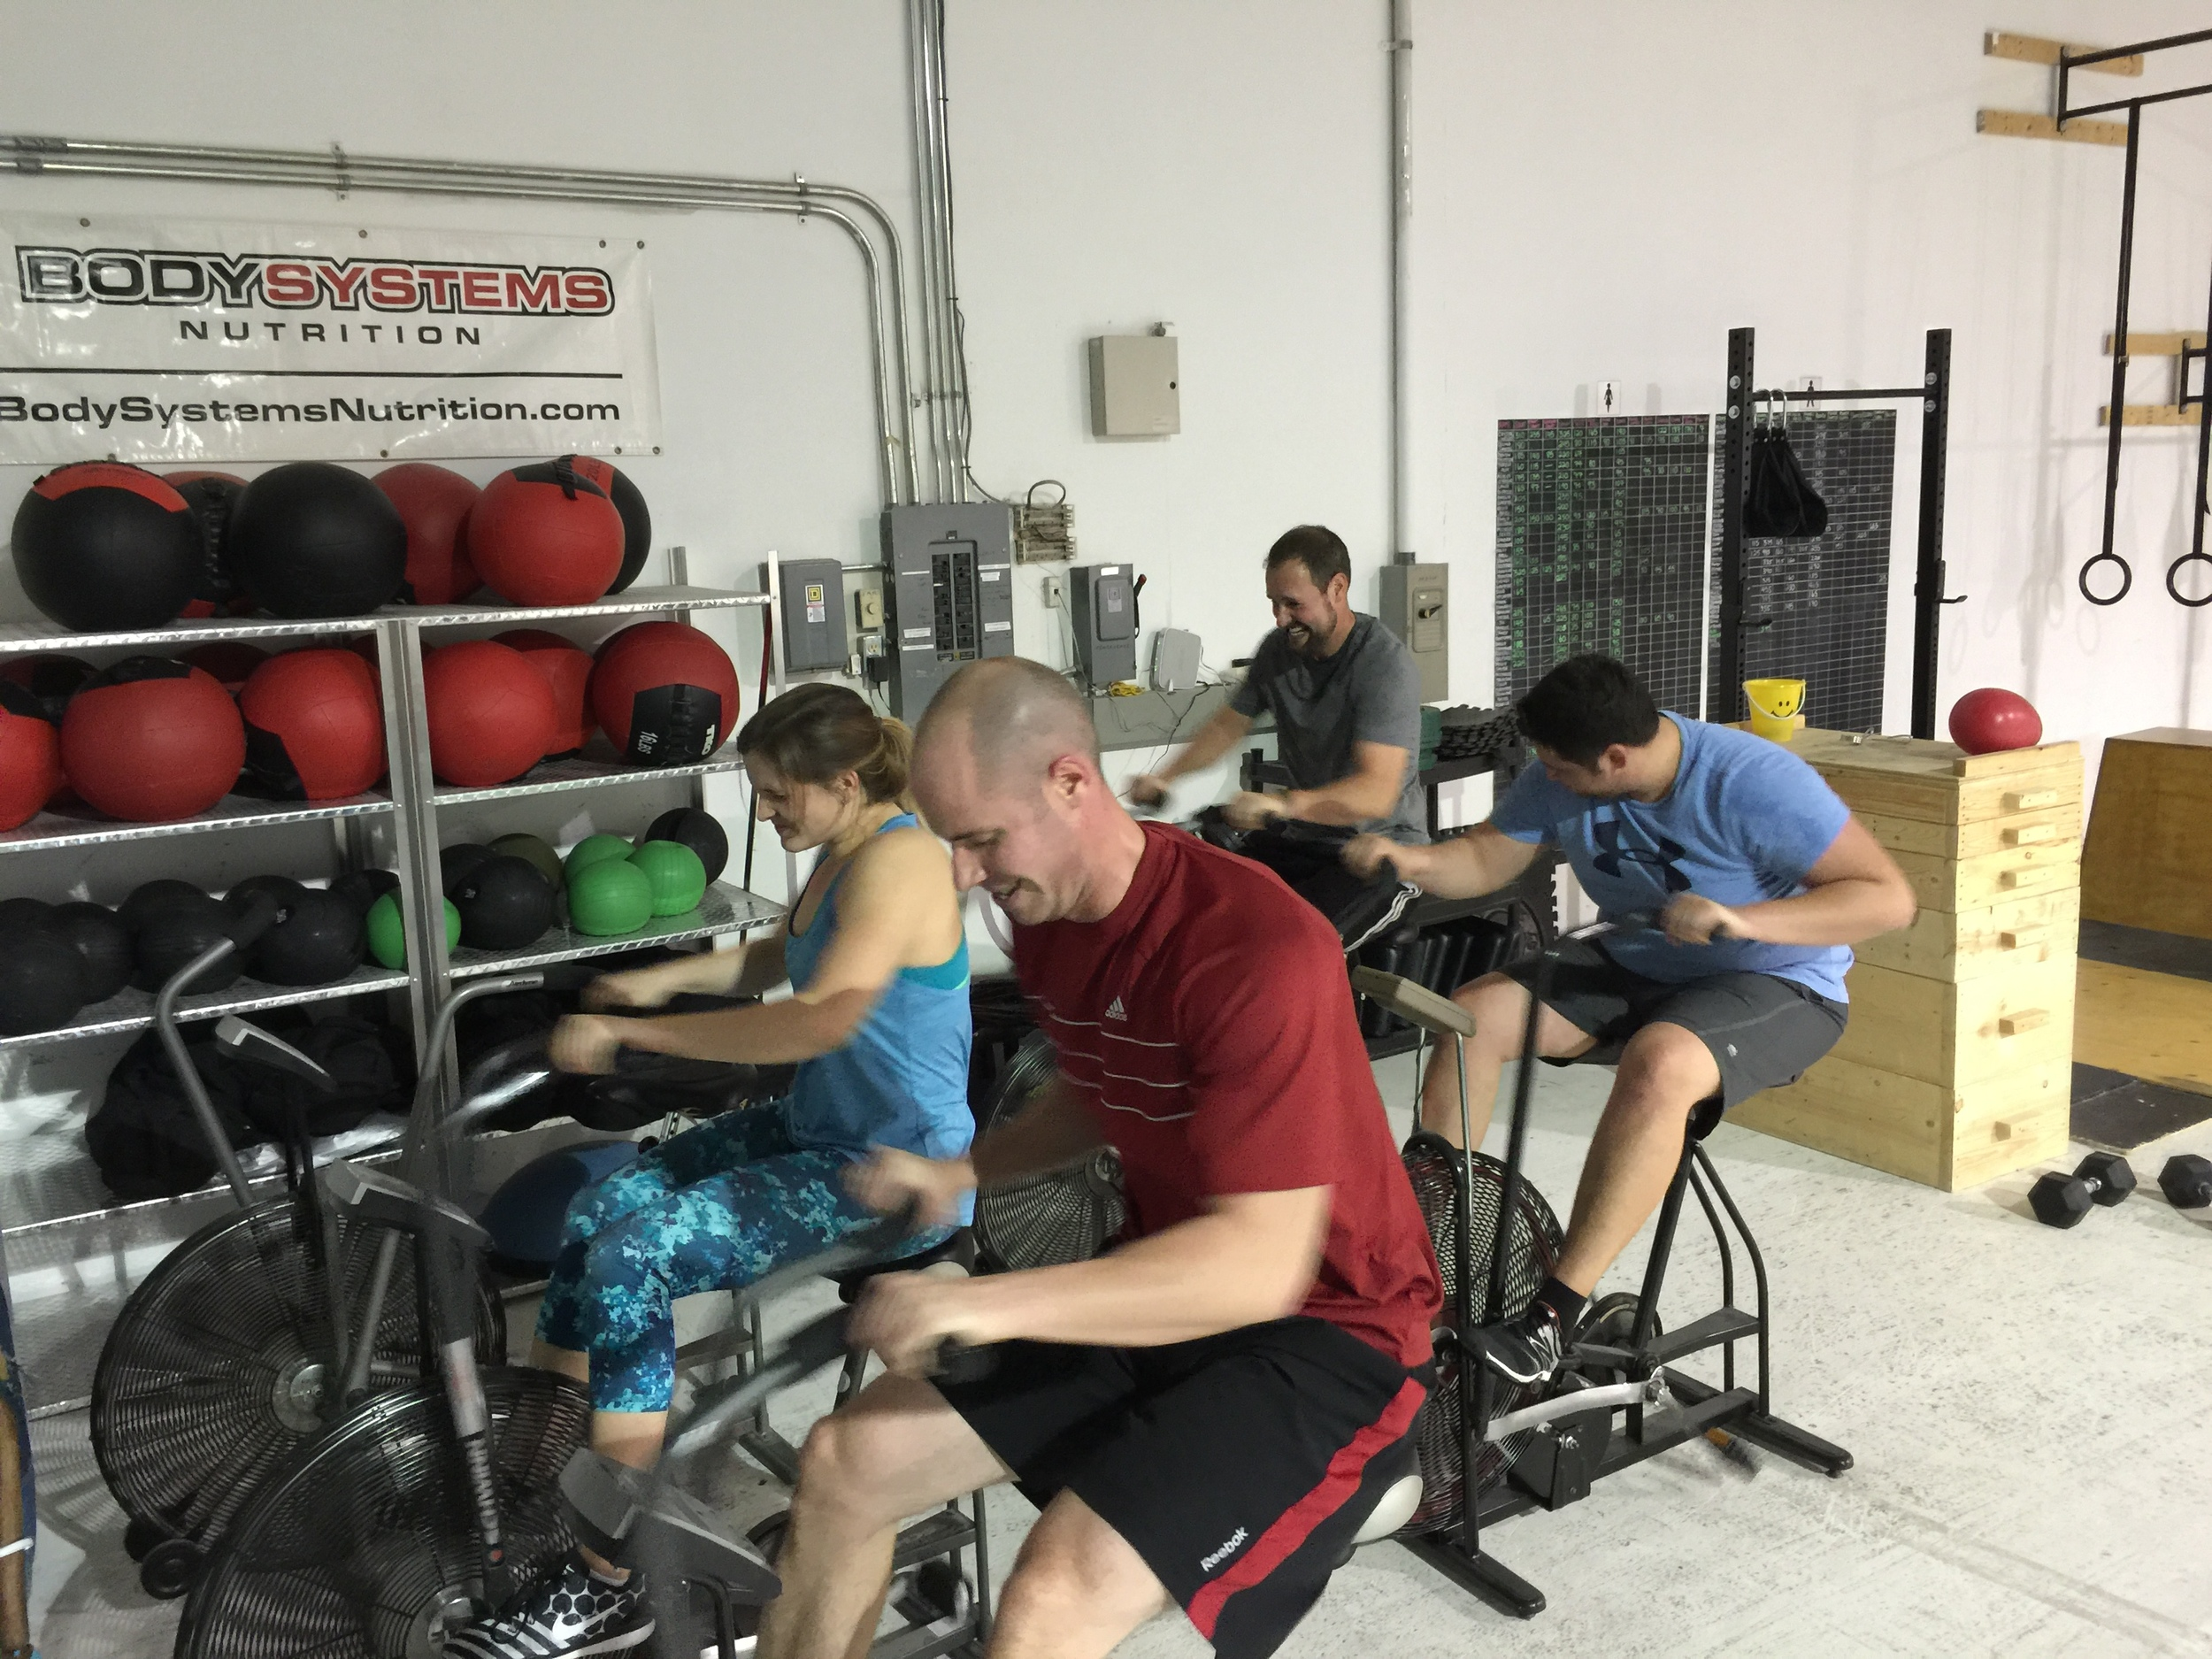 Some footless air dyne action to finish off the shoulder conditioning.